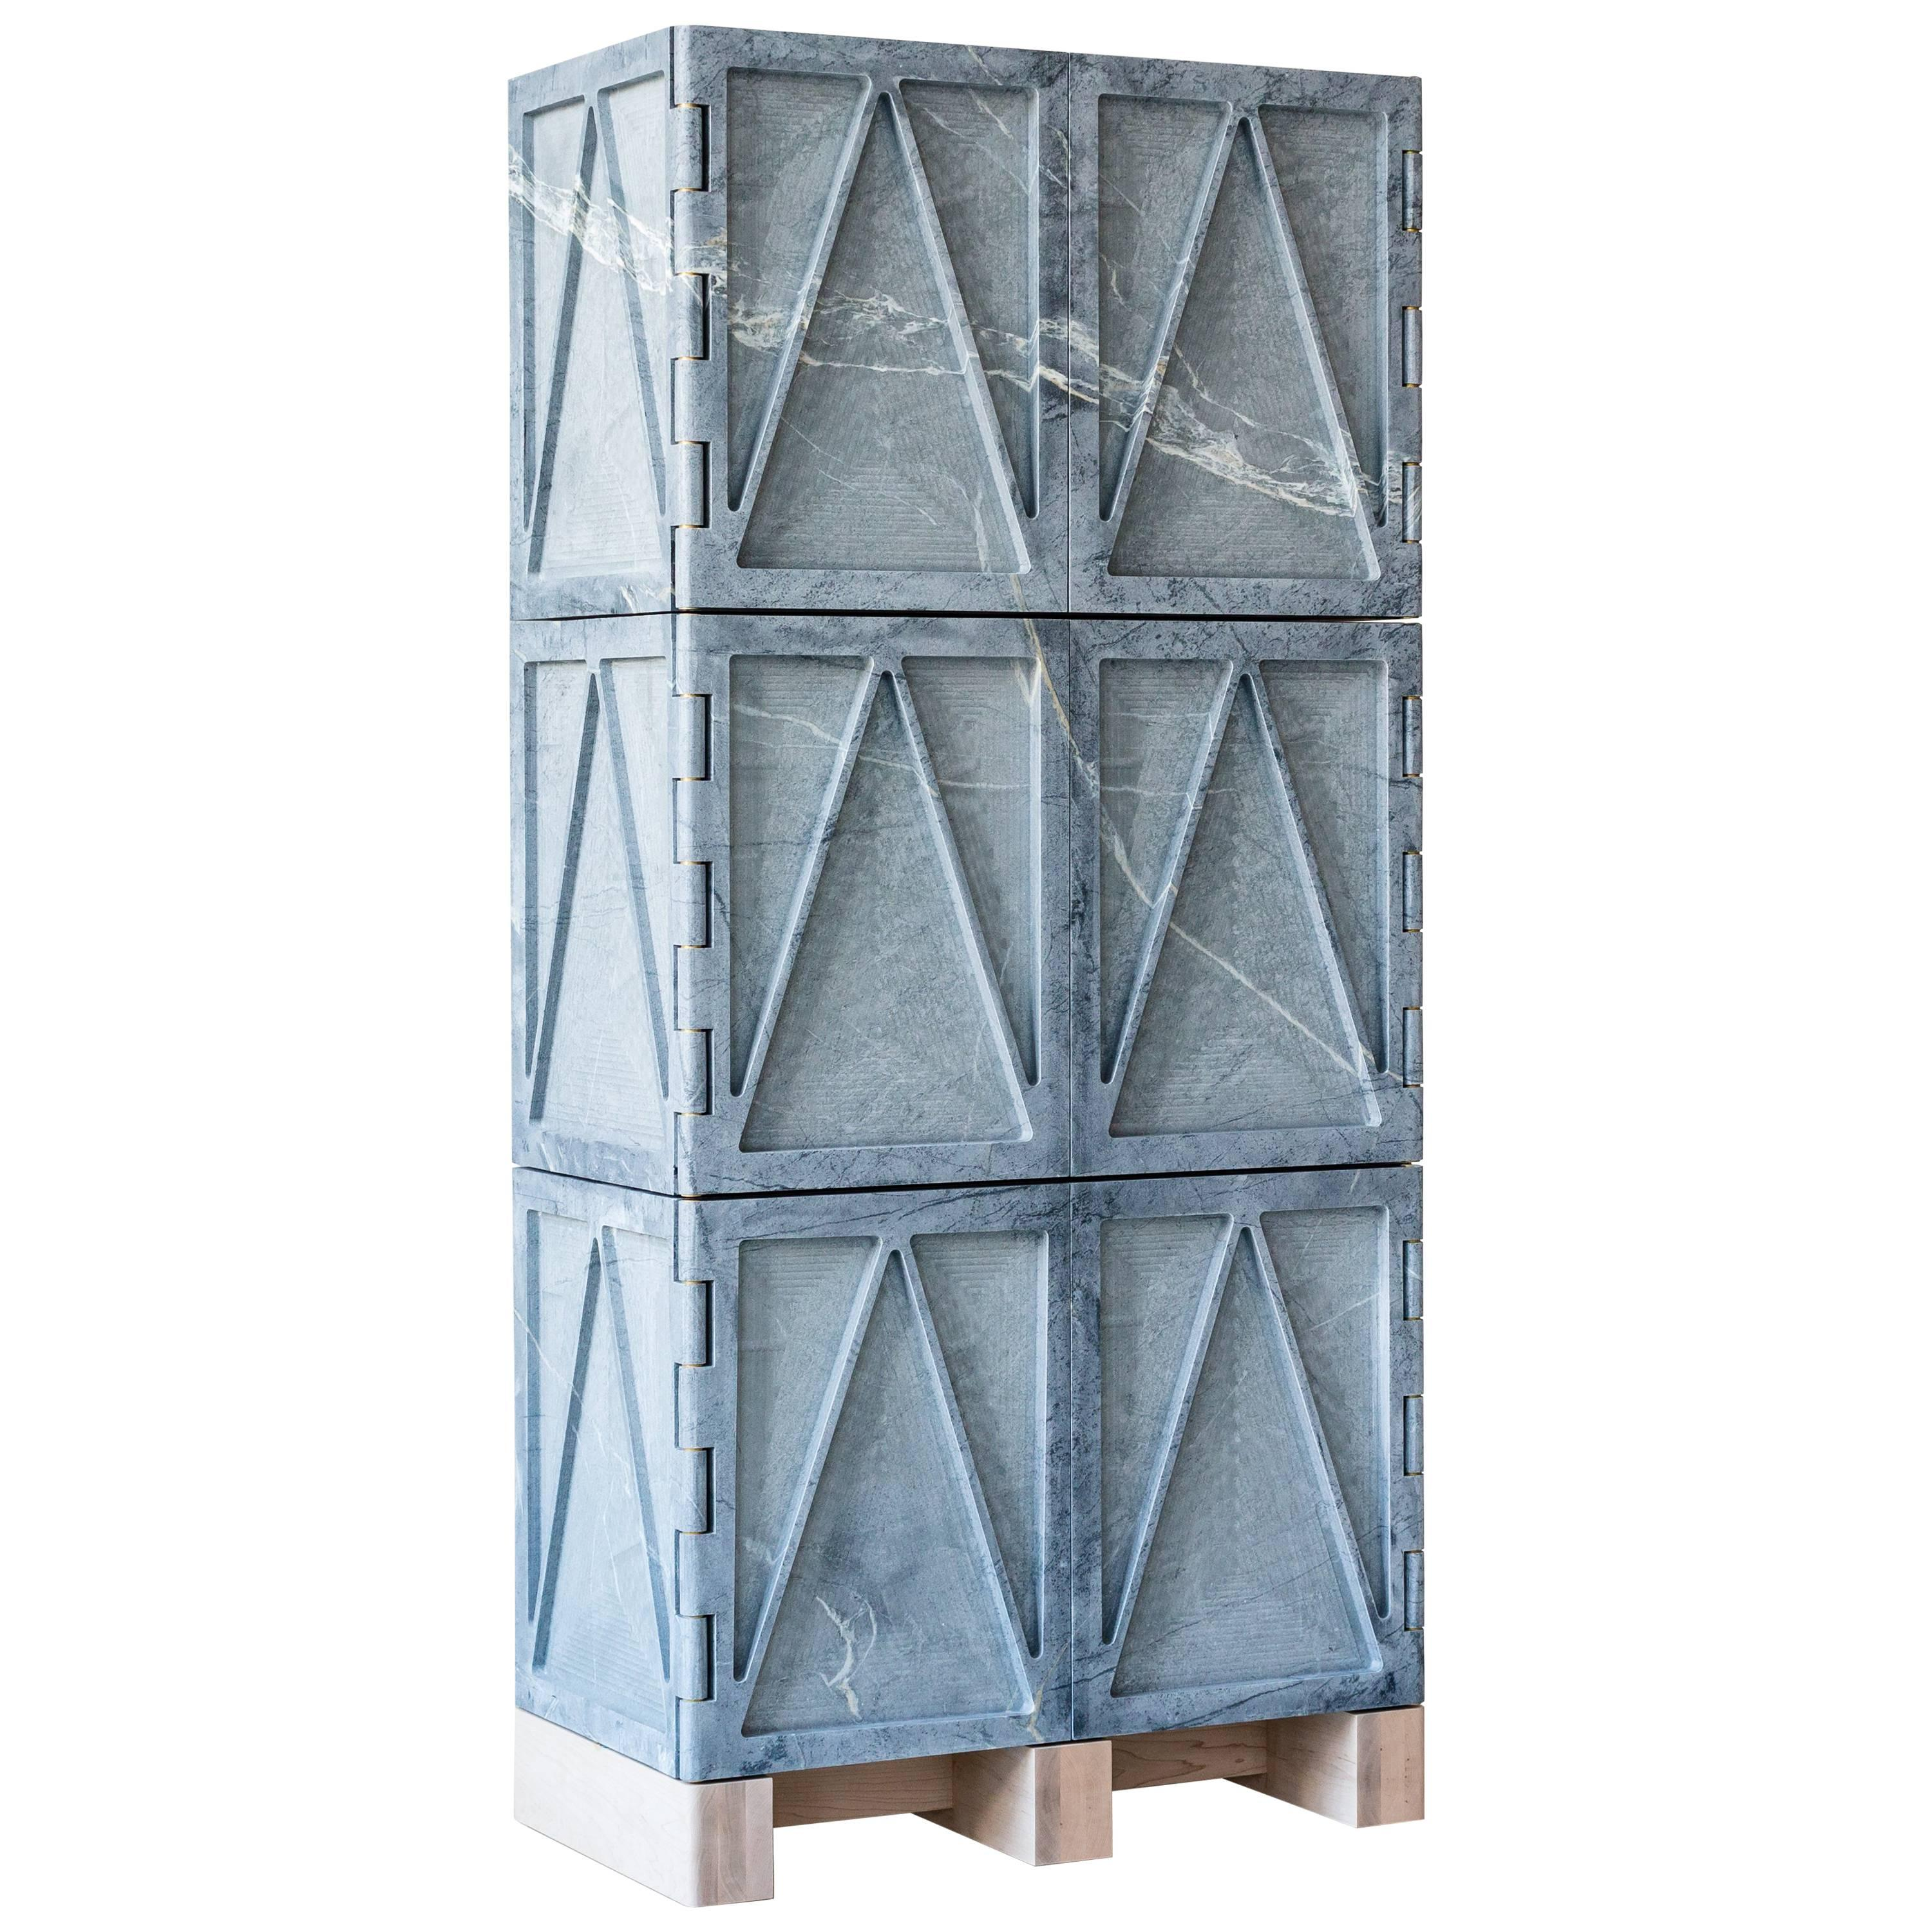 Limited Edition Relief Stone Cabinet in Soapstone by Fort Standard, in Stock